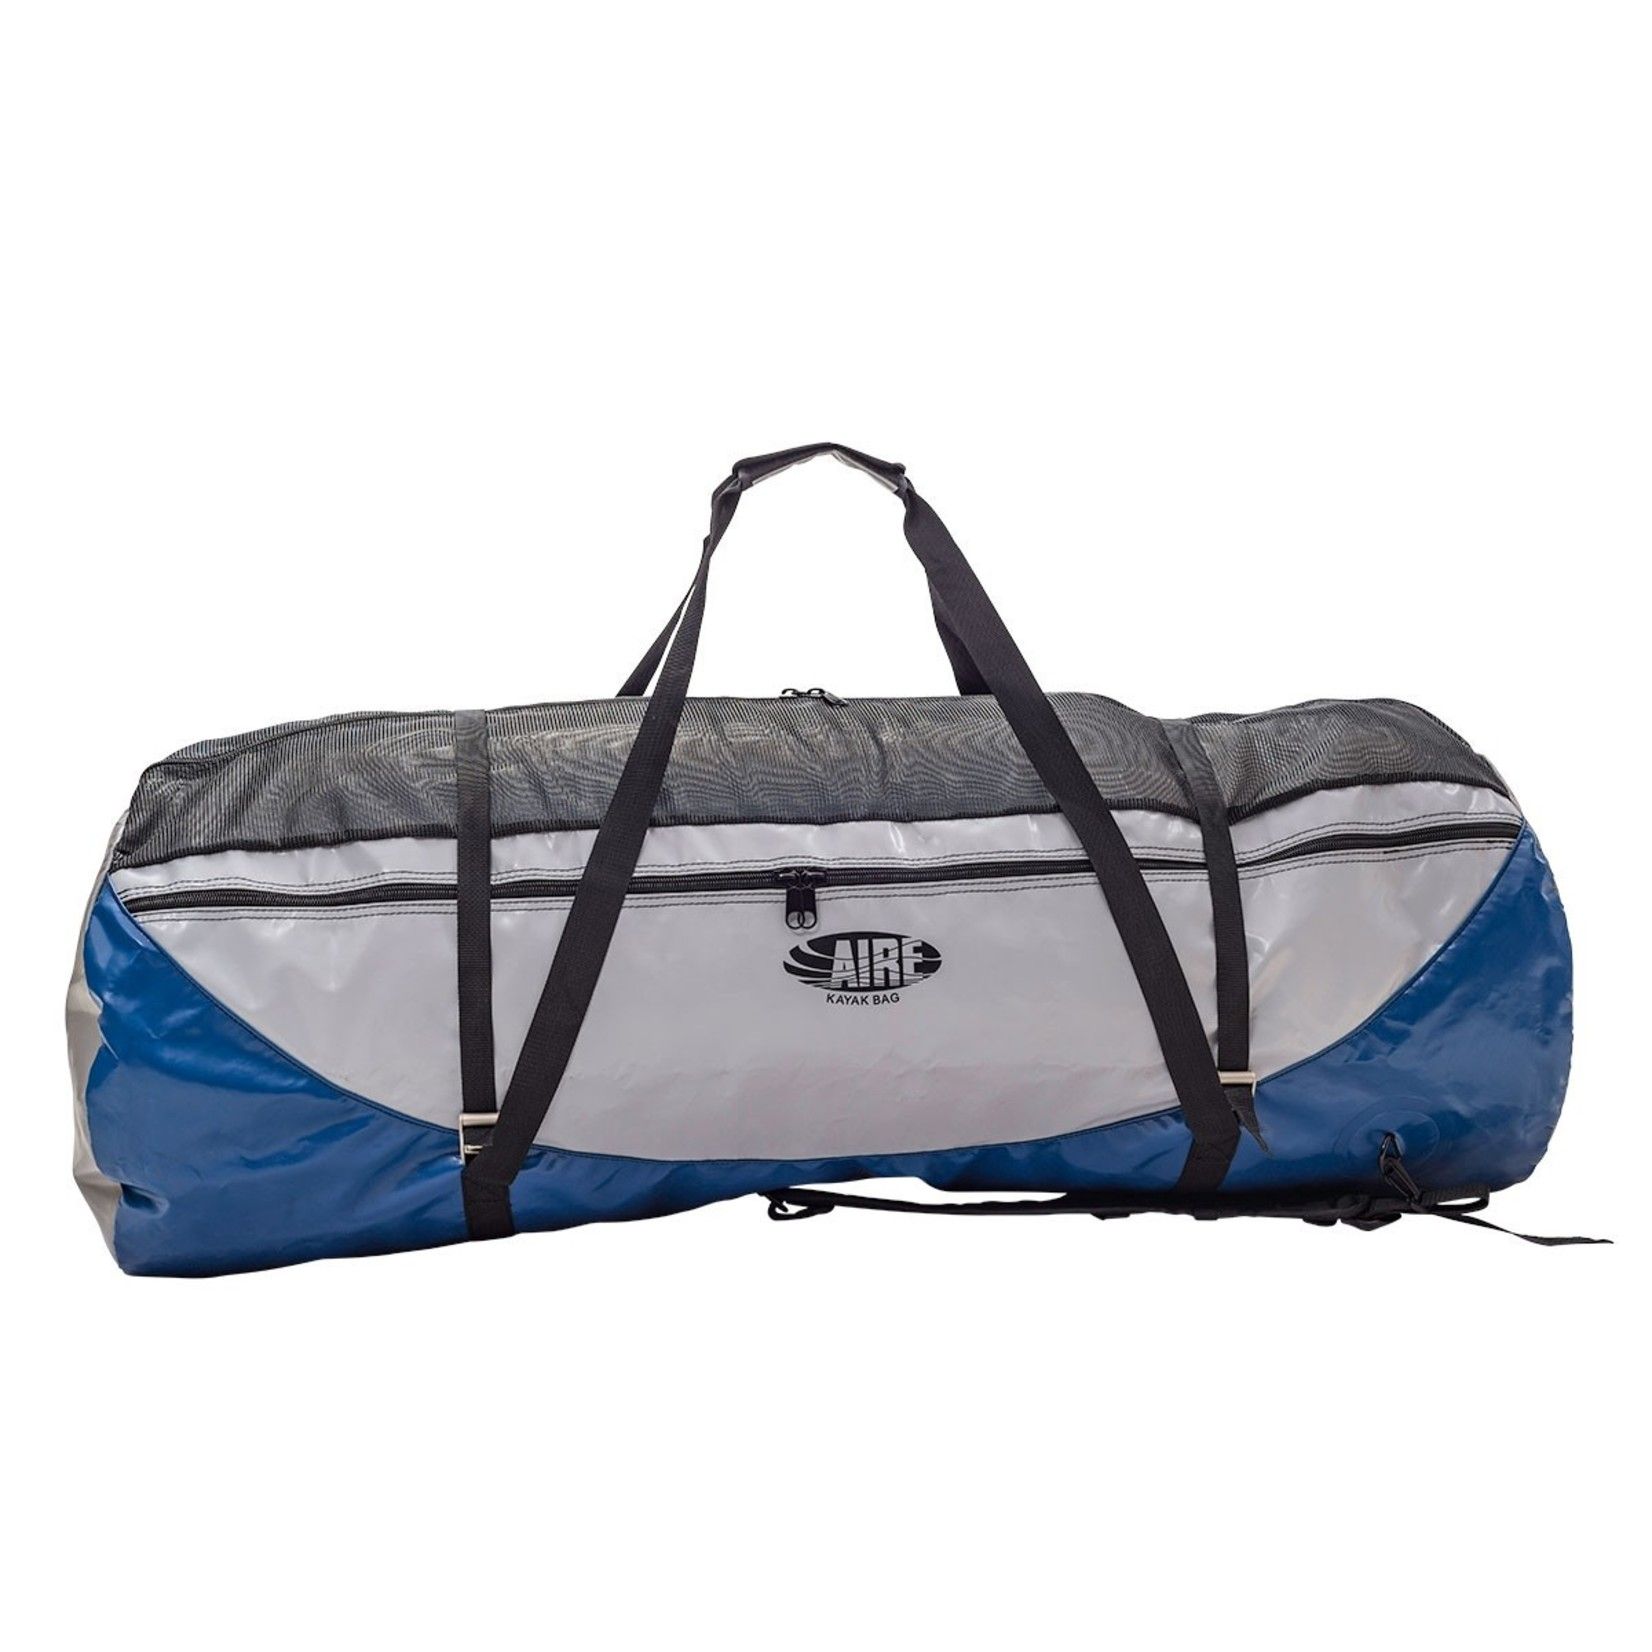 AIRE AIRE Small Kayak Bag - Blue/Gray